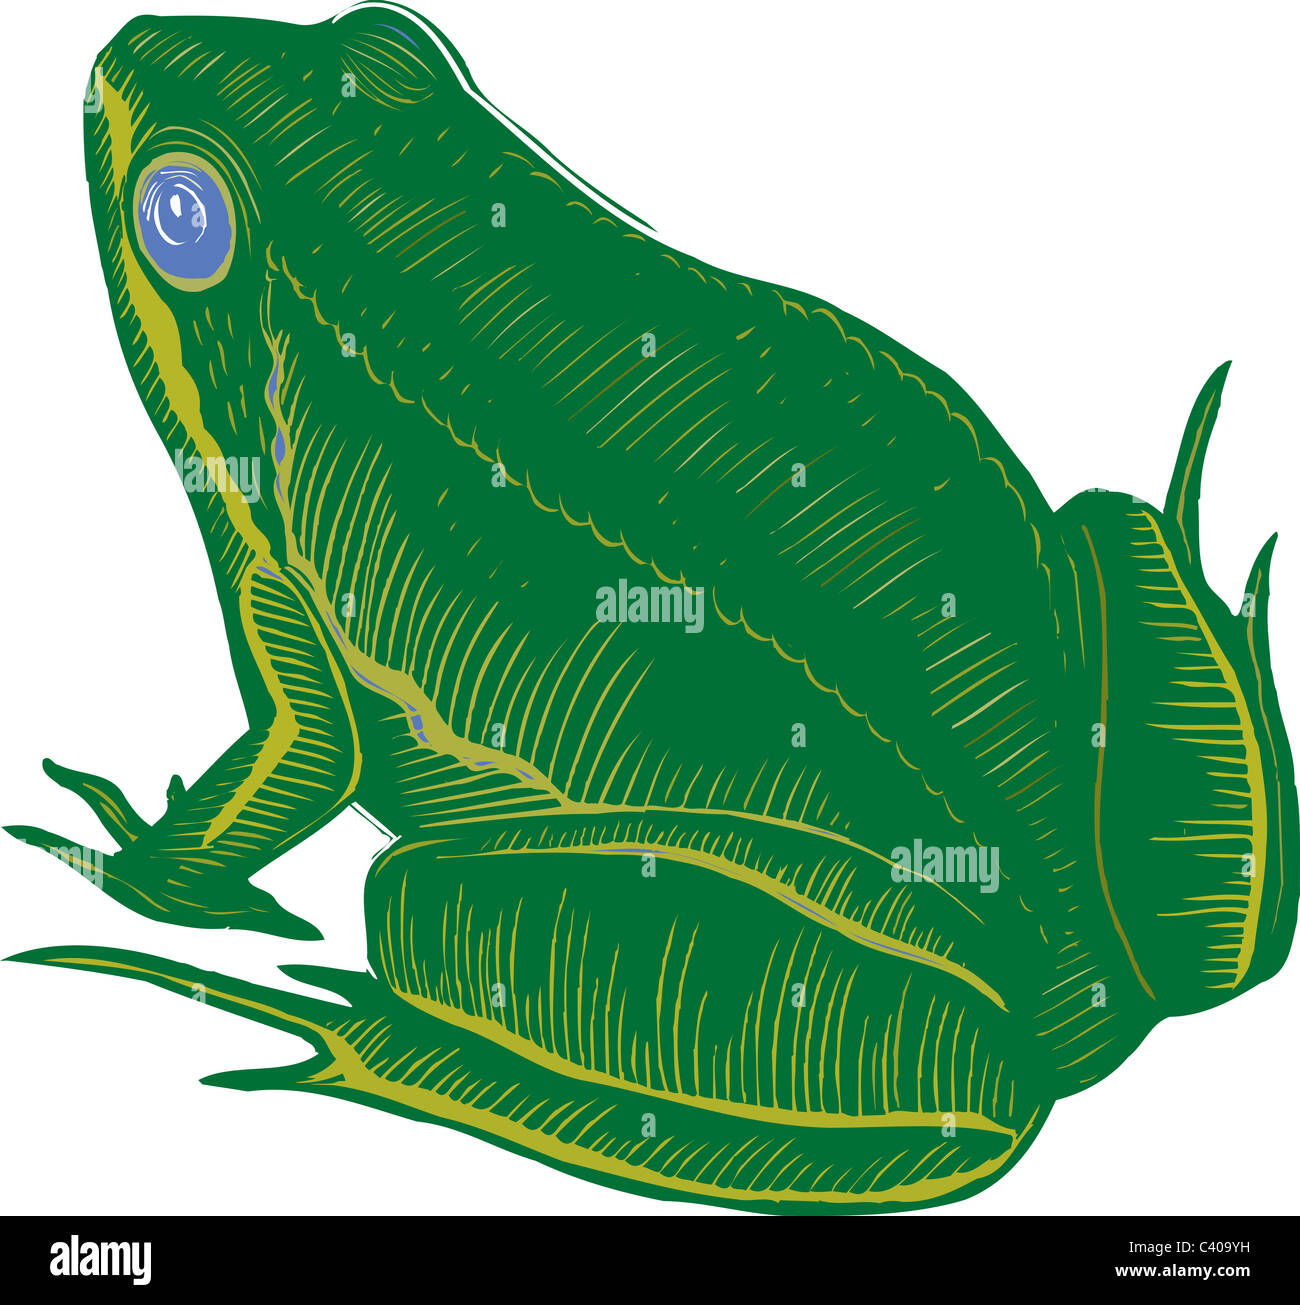 Illustration of a frog - Stock Image